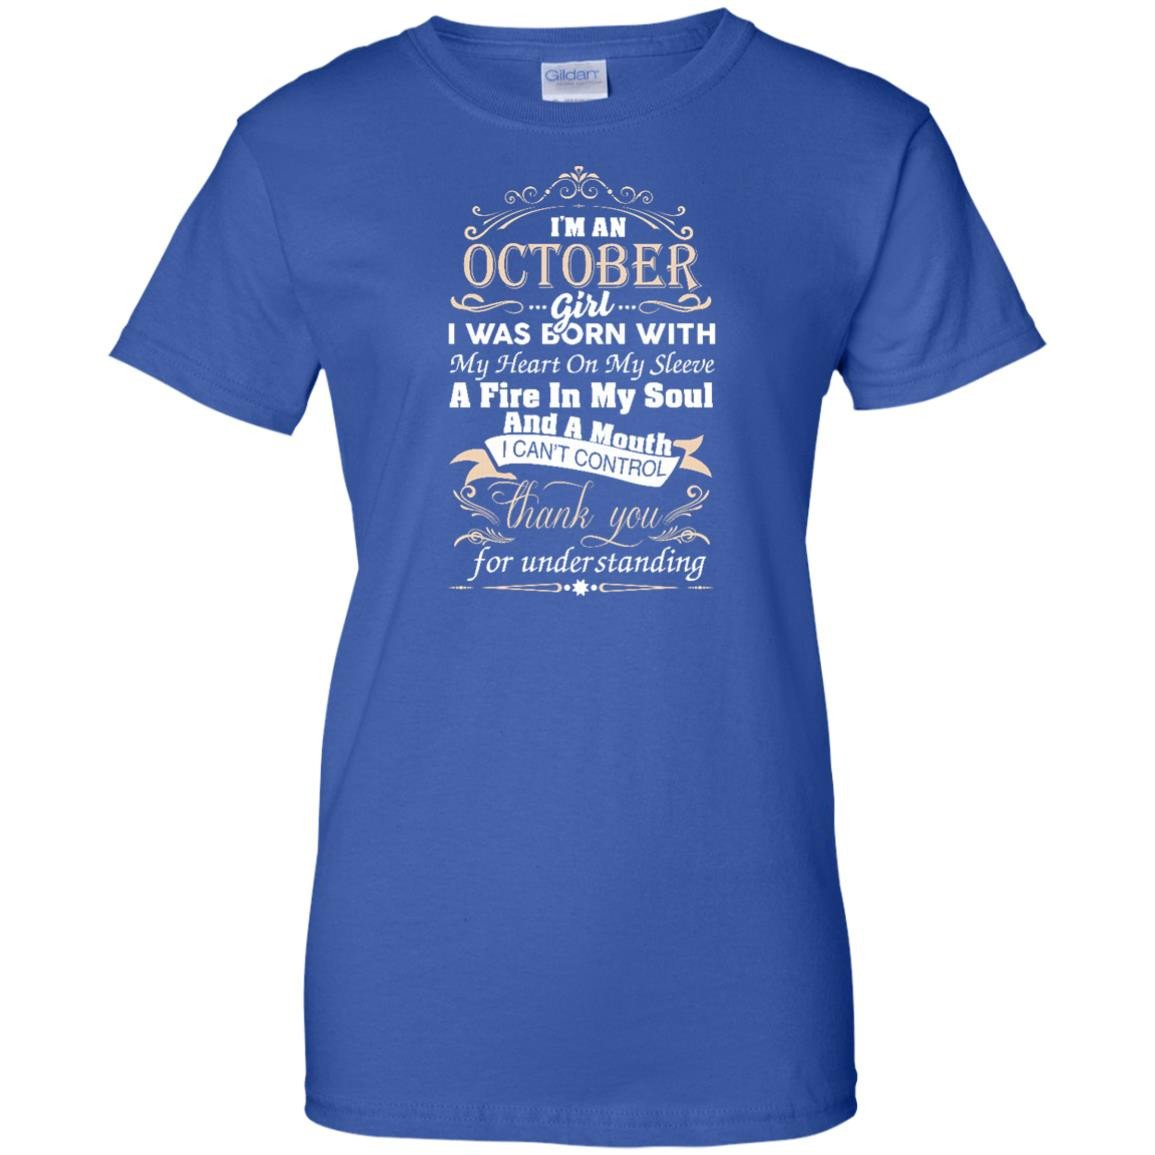 I am an October girl birth day T shirt gift